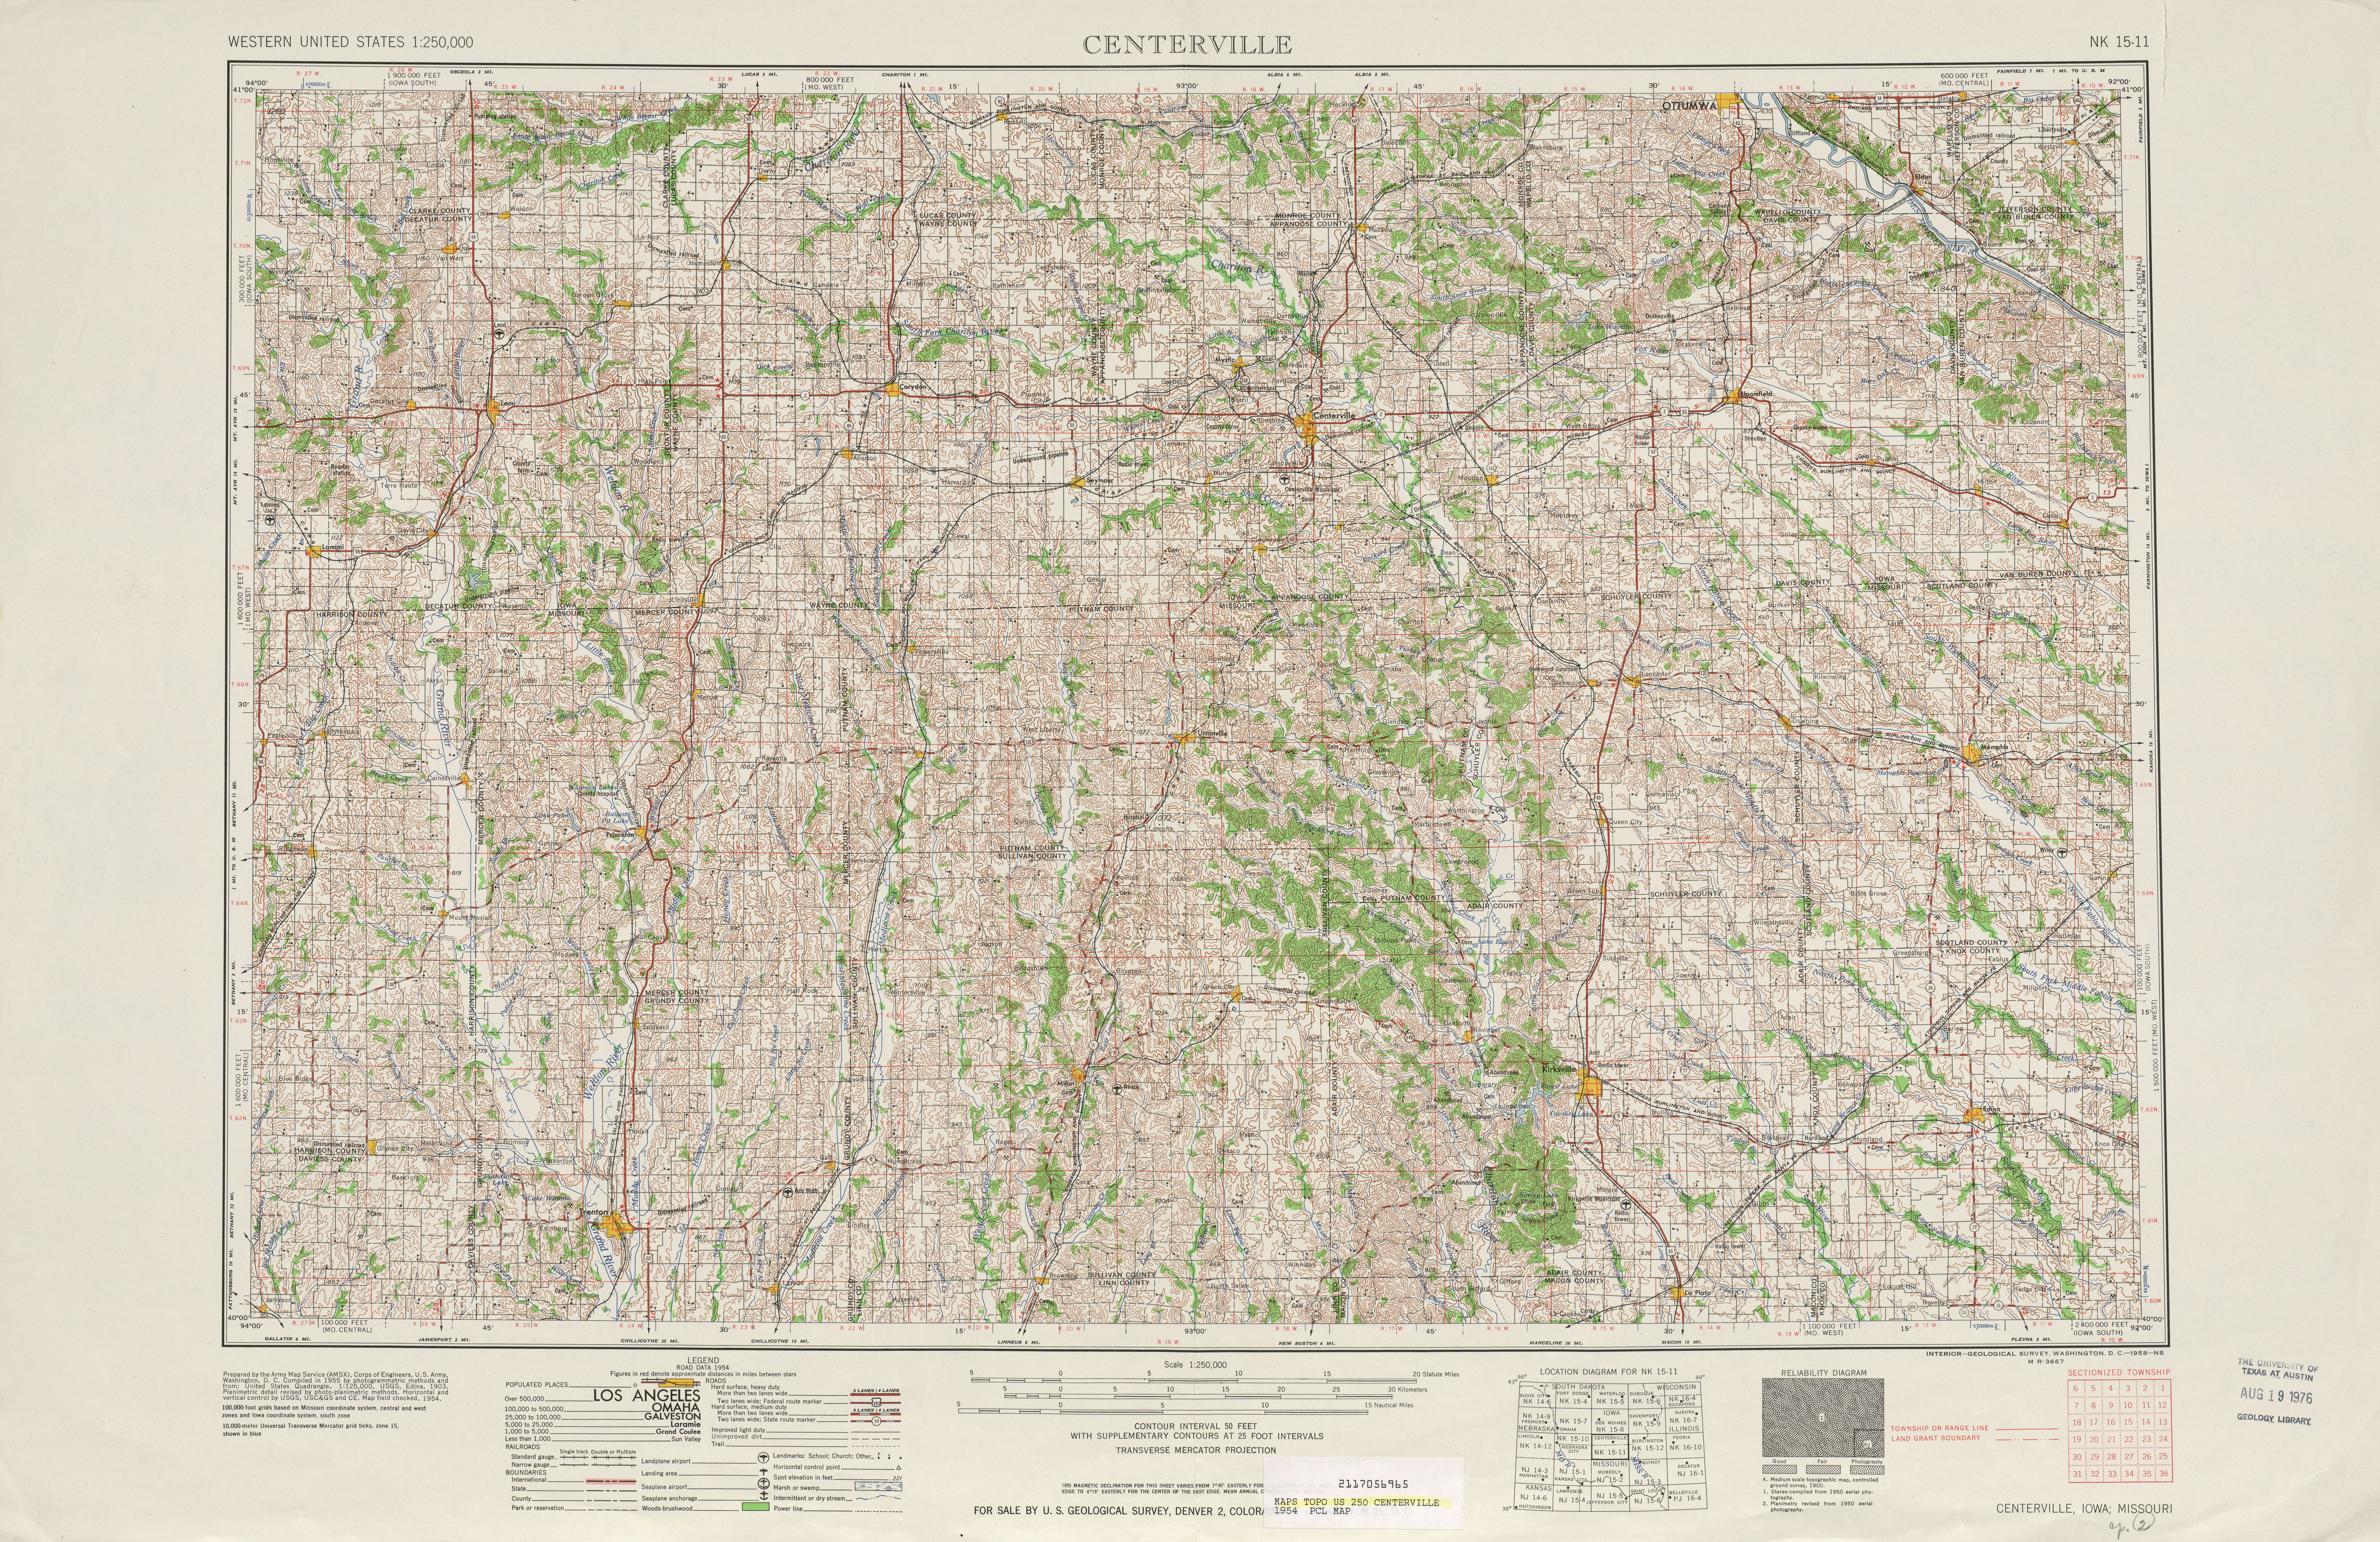 Centerville Topographic Map Sheet, United States 1954